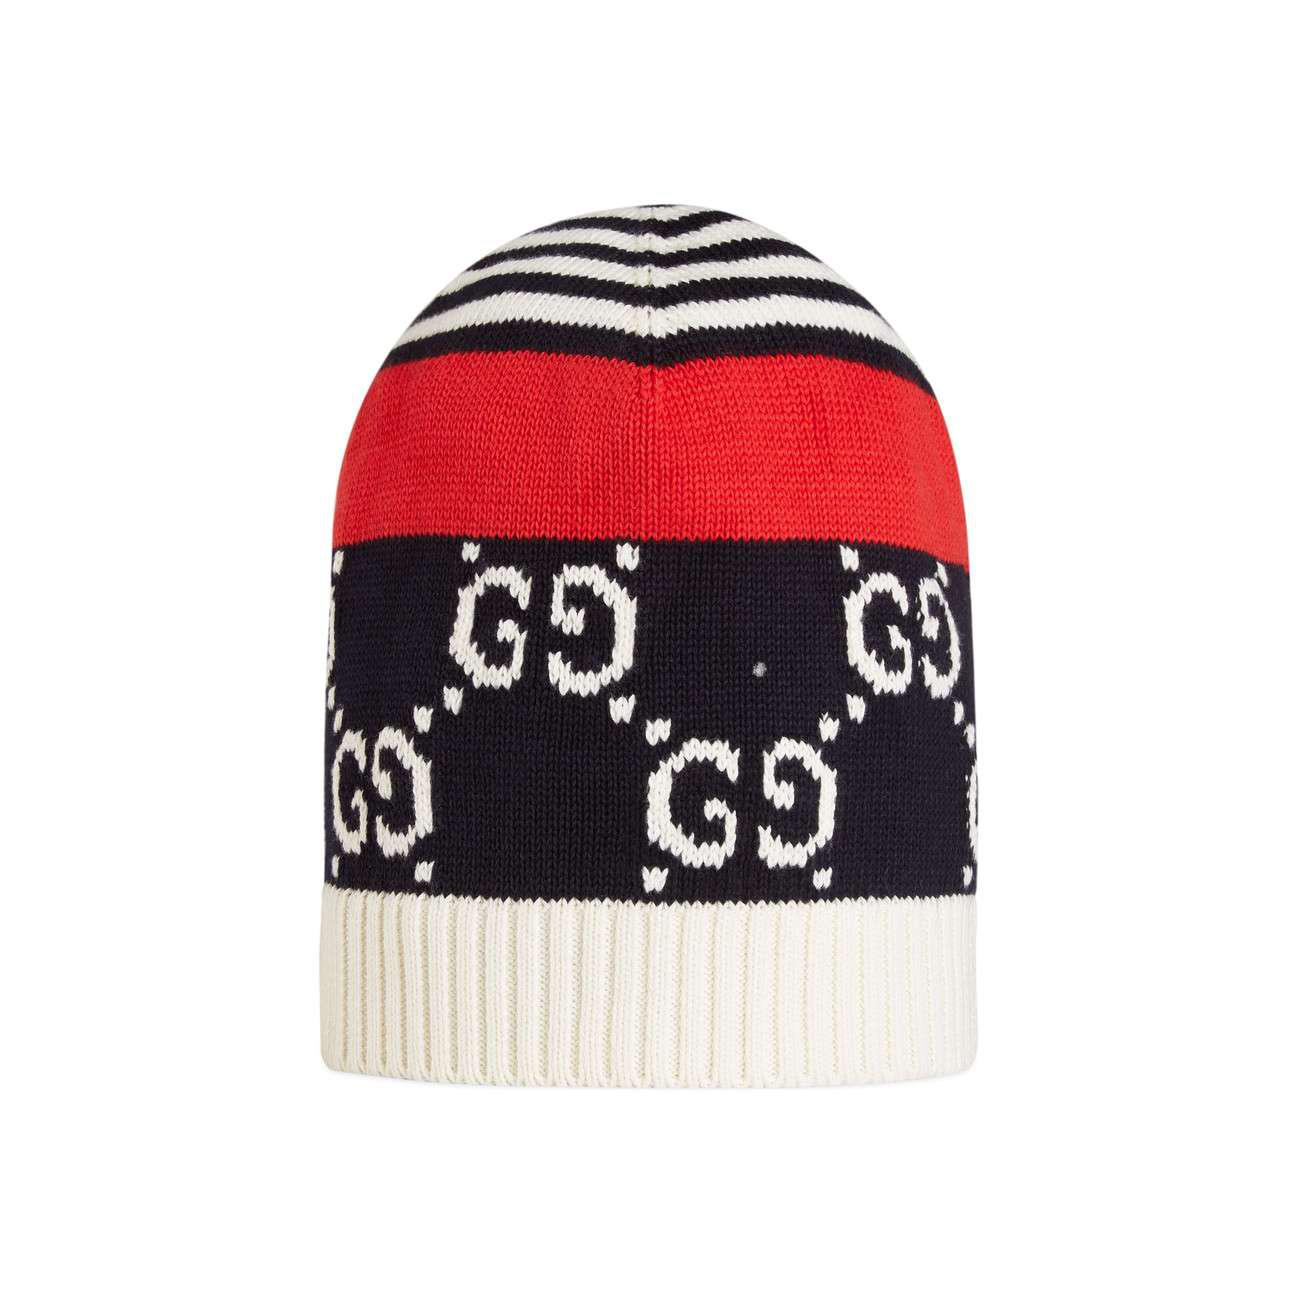 17c8e151 Lyst - Gucci Cotton Hat With GG Motif in Blue